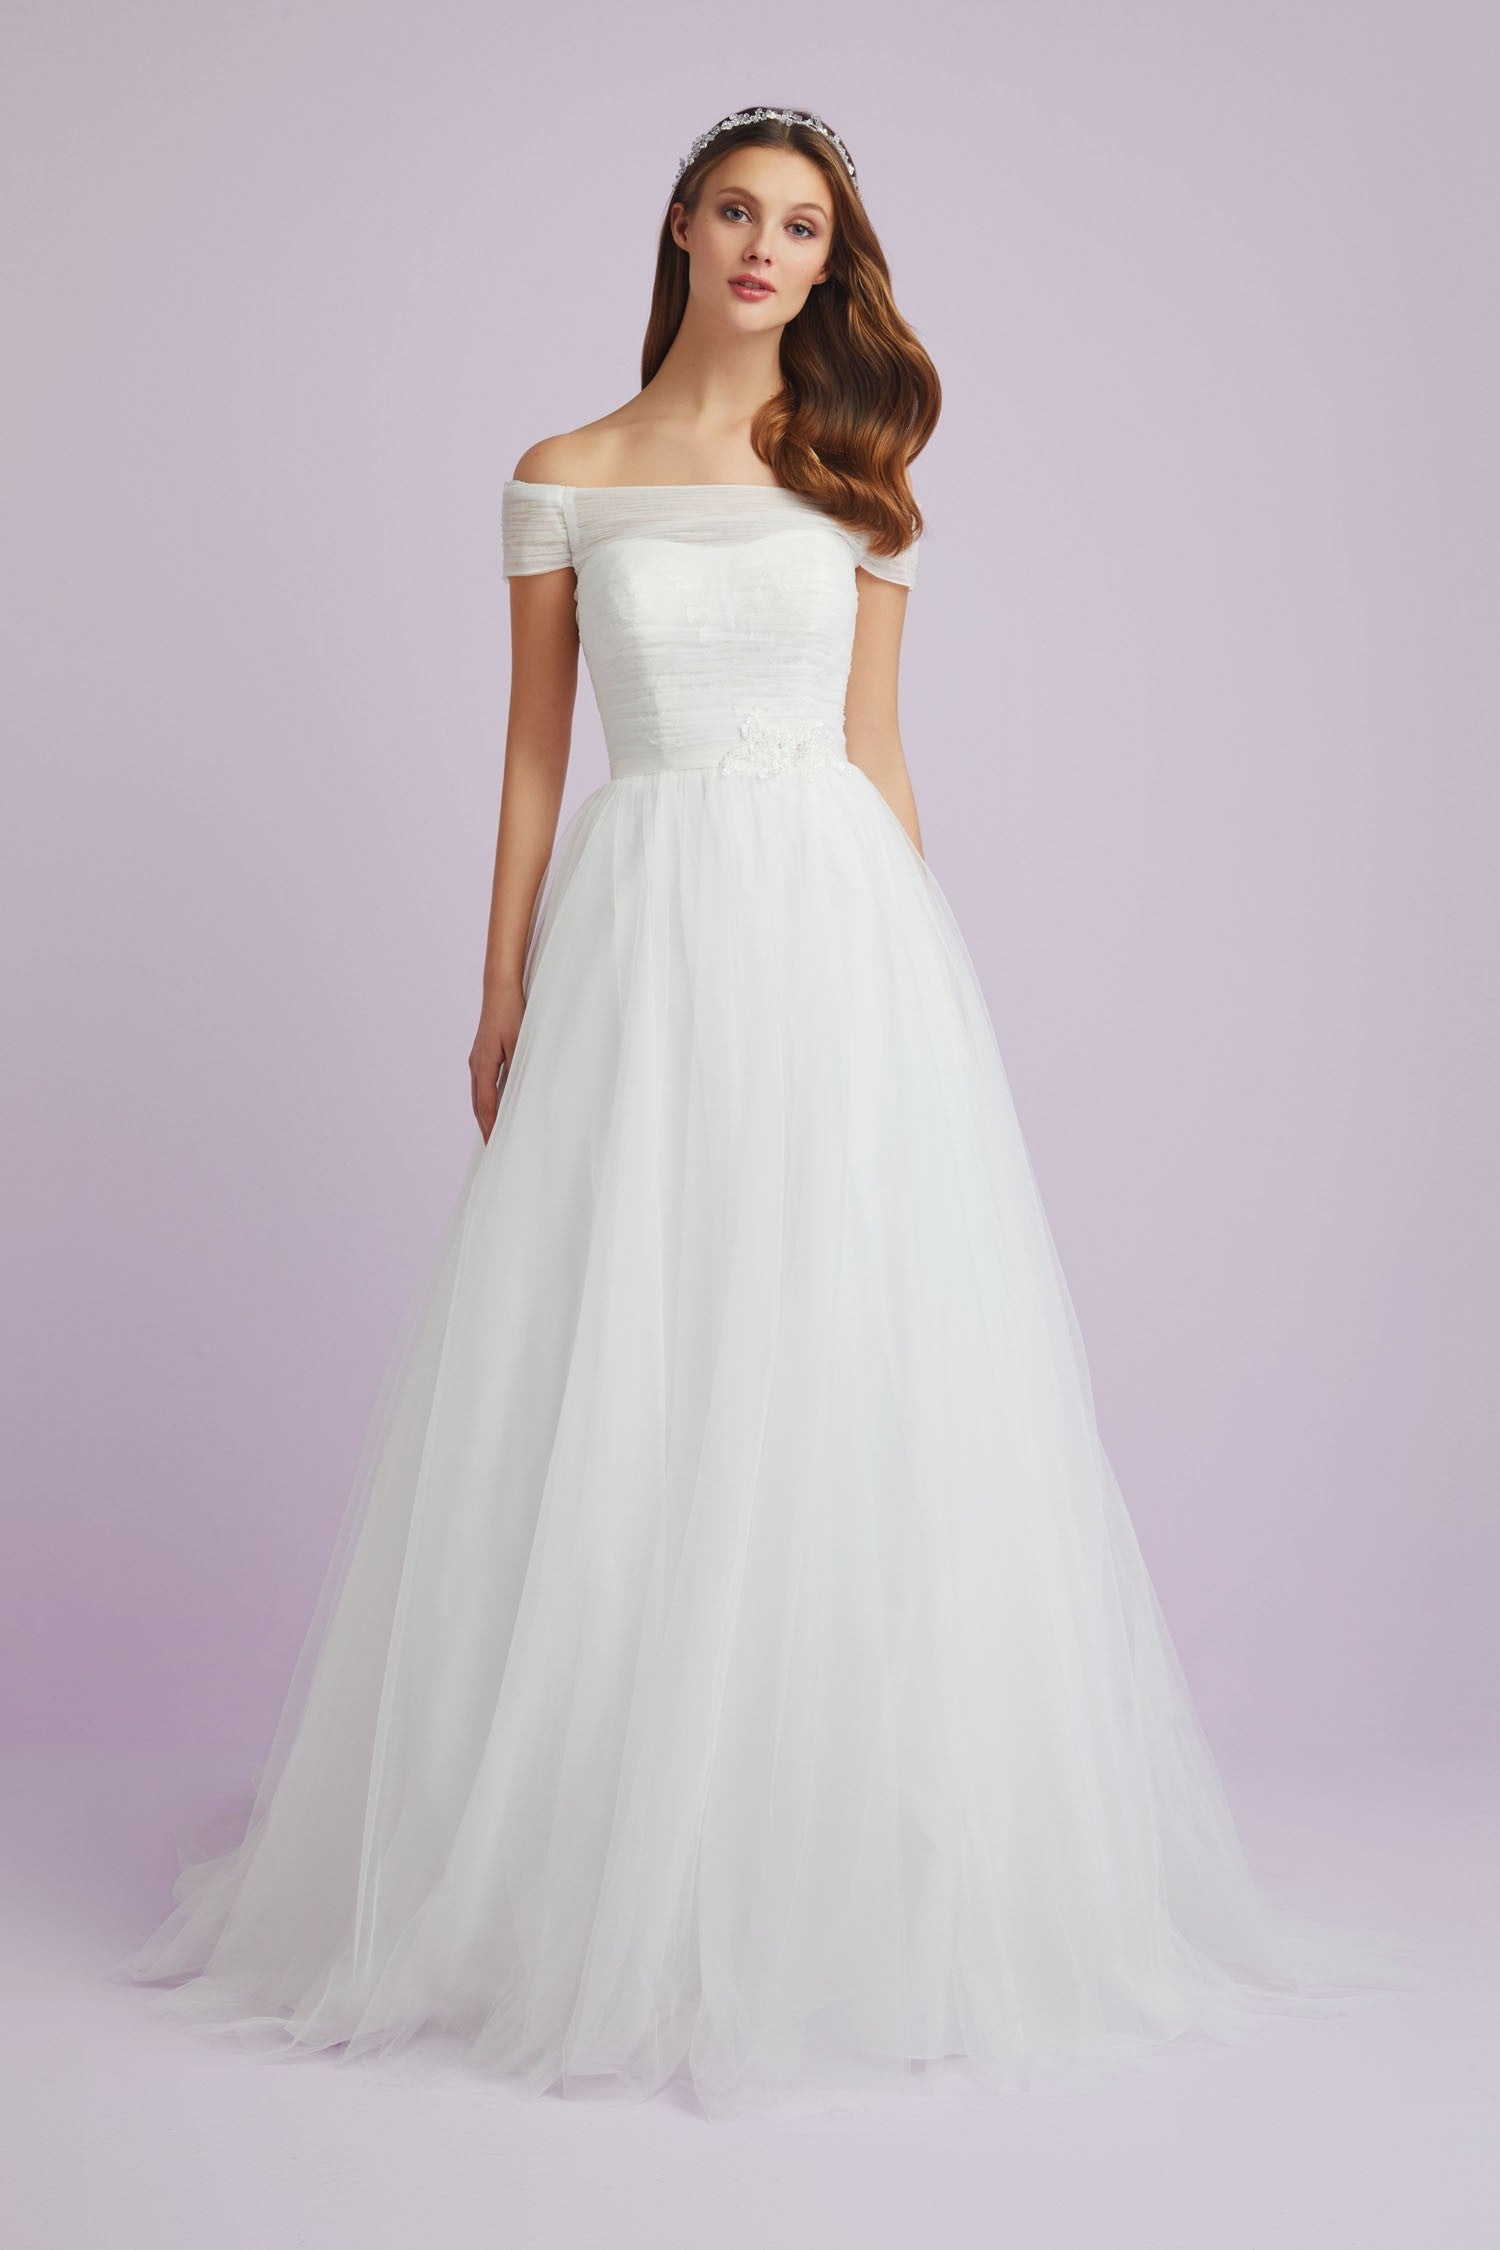 Tulle Wedding Dress 4xlwpd24806